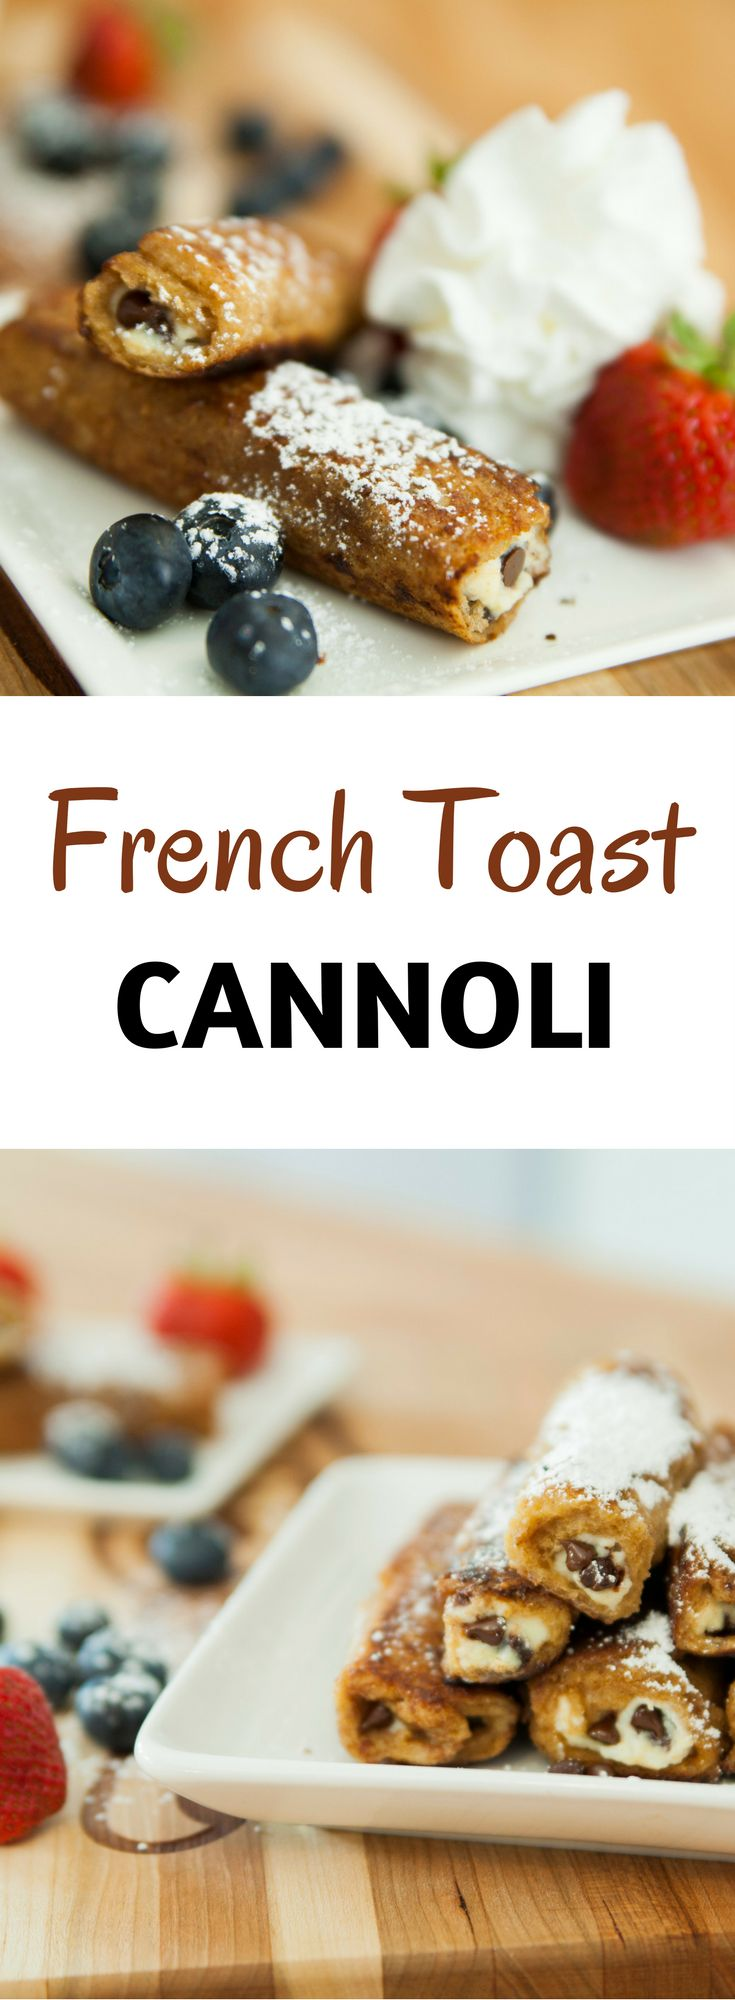 French Toast Cannoli Roll Ups: this fun breakfast/brunch recipe gets french toast rolled up with classic cannoli flavors. You won't be able to resist it!